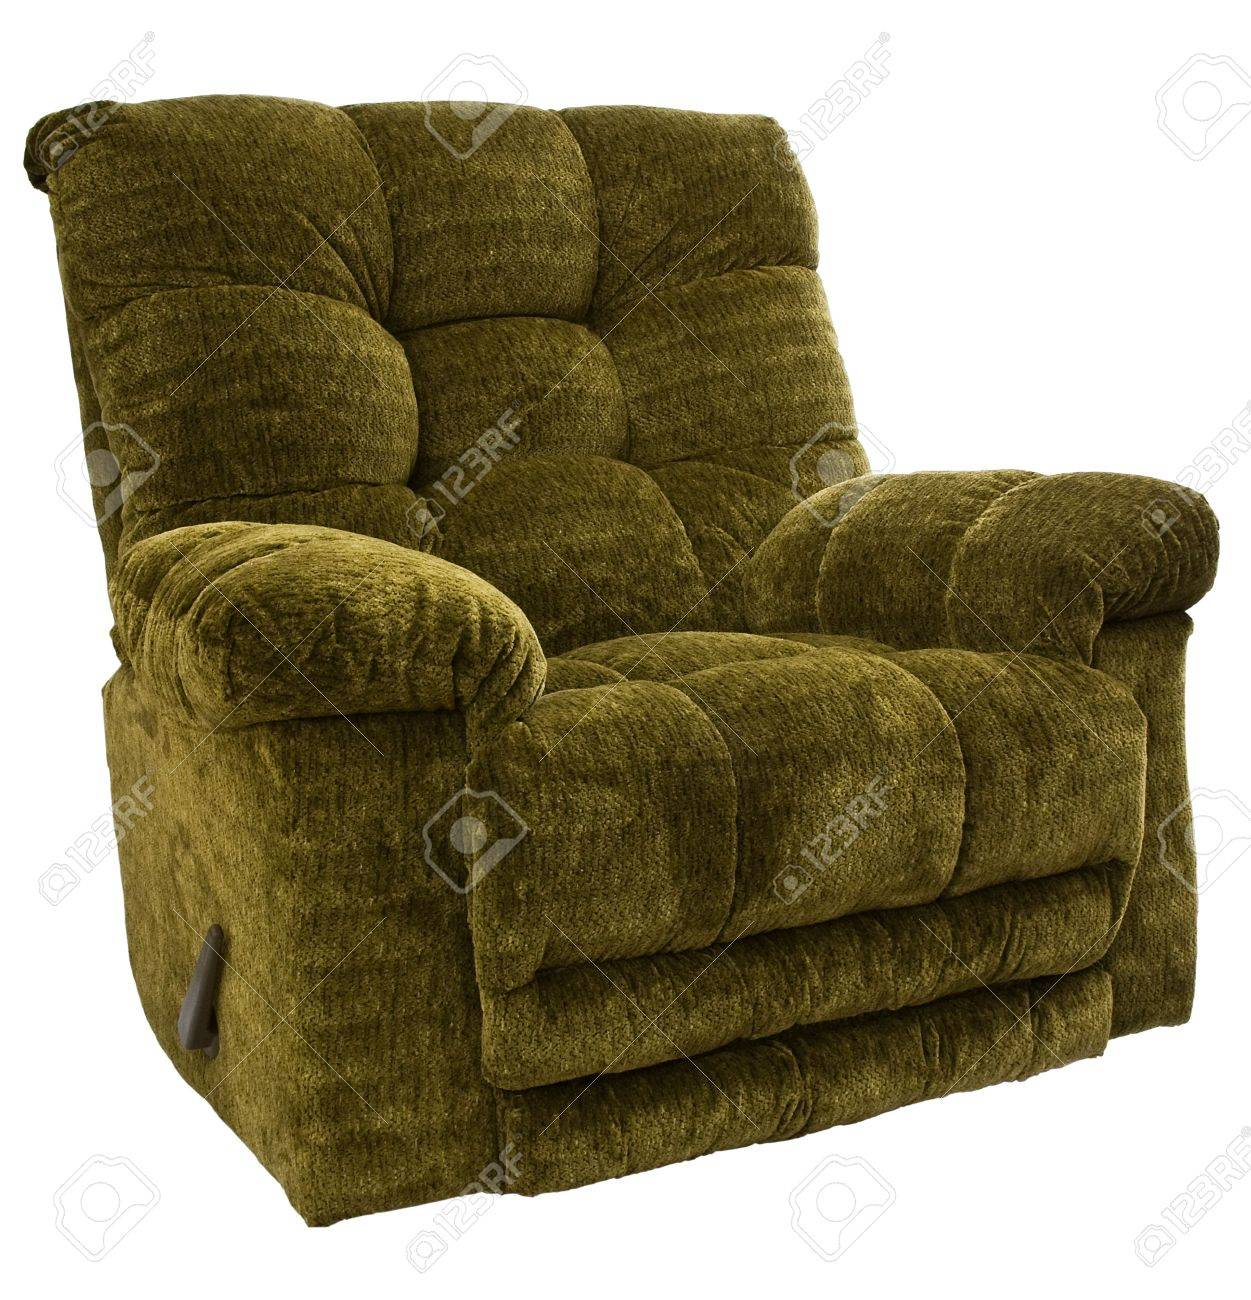 Genial Big And Tall Sage Green Rocker Recliner Chair Stock Photo   4809599